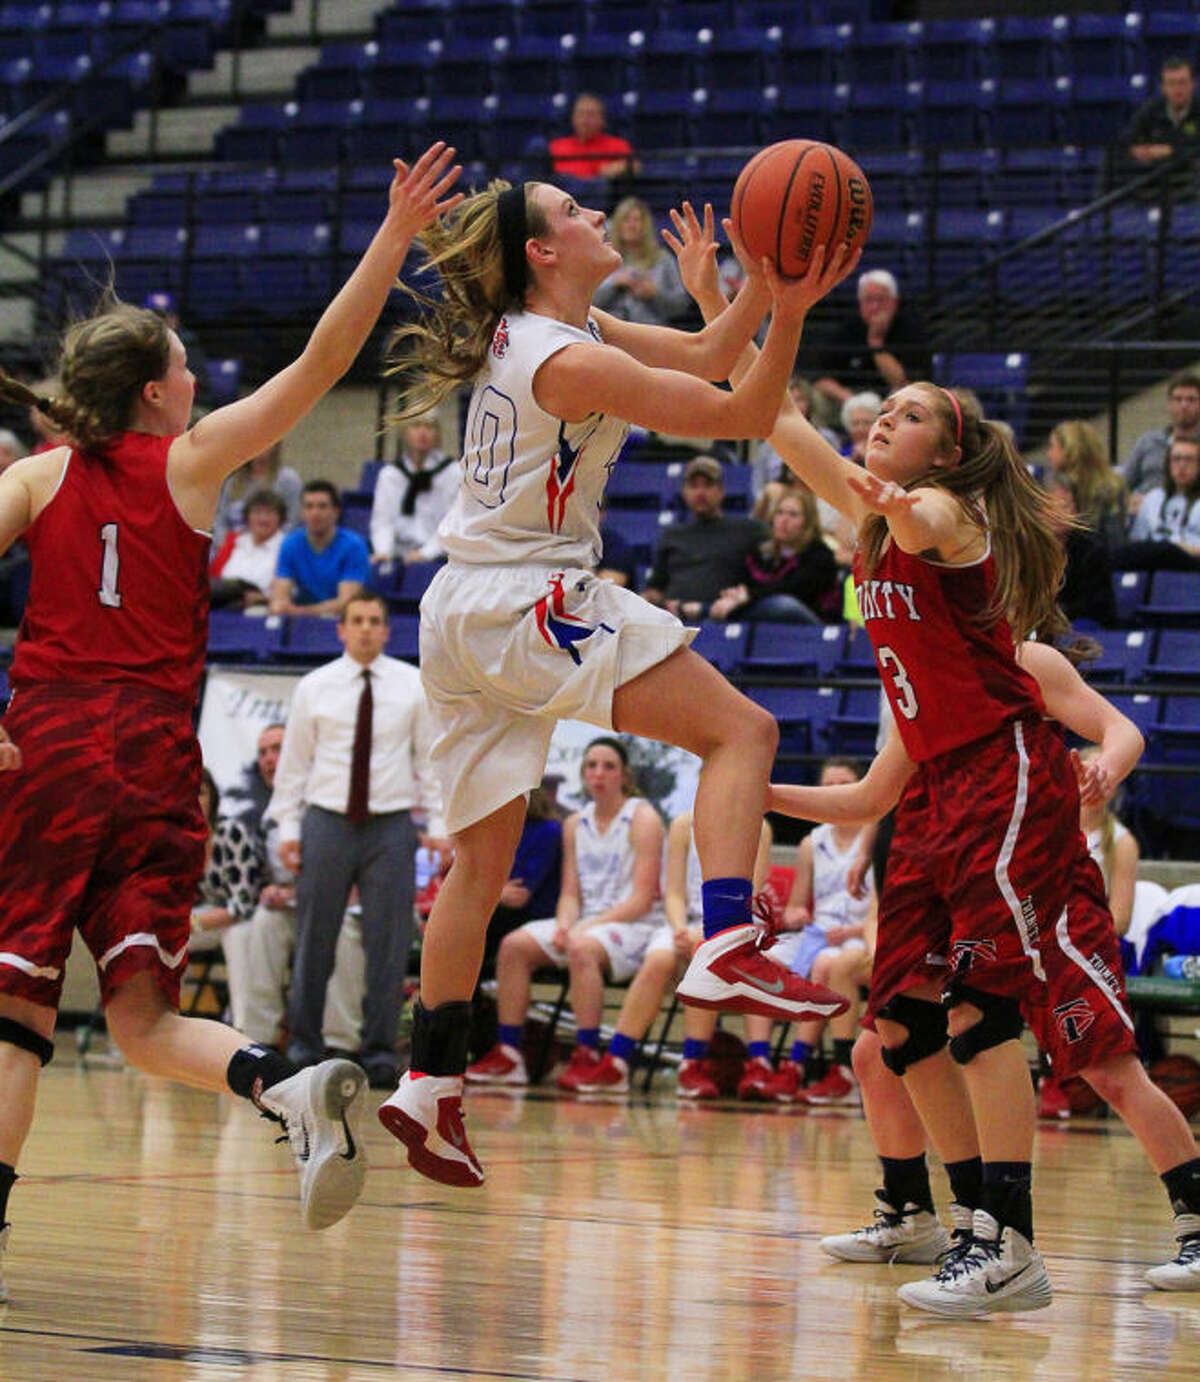 Lady Mustangs guard Morgan Ashton (10) goes to the basket during a TAPPS 4A Semifinal girls basketball game between the Midland Christian Lady Mustangs and the Lubbock Trinity Lady Lions at Lake Ridge High School in Mansfield, TX on Friday, February 28, 2014. (Photo by Ray Carlin)